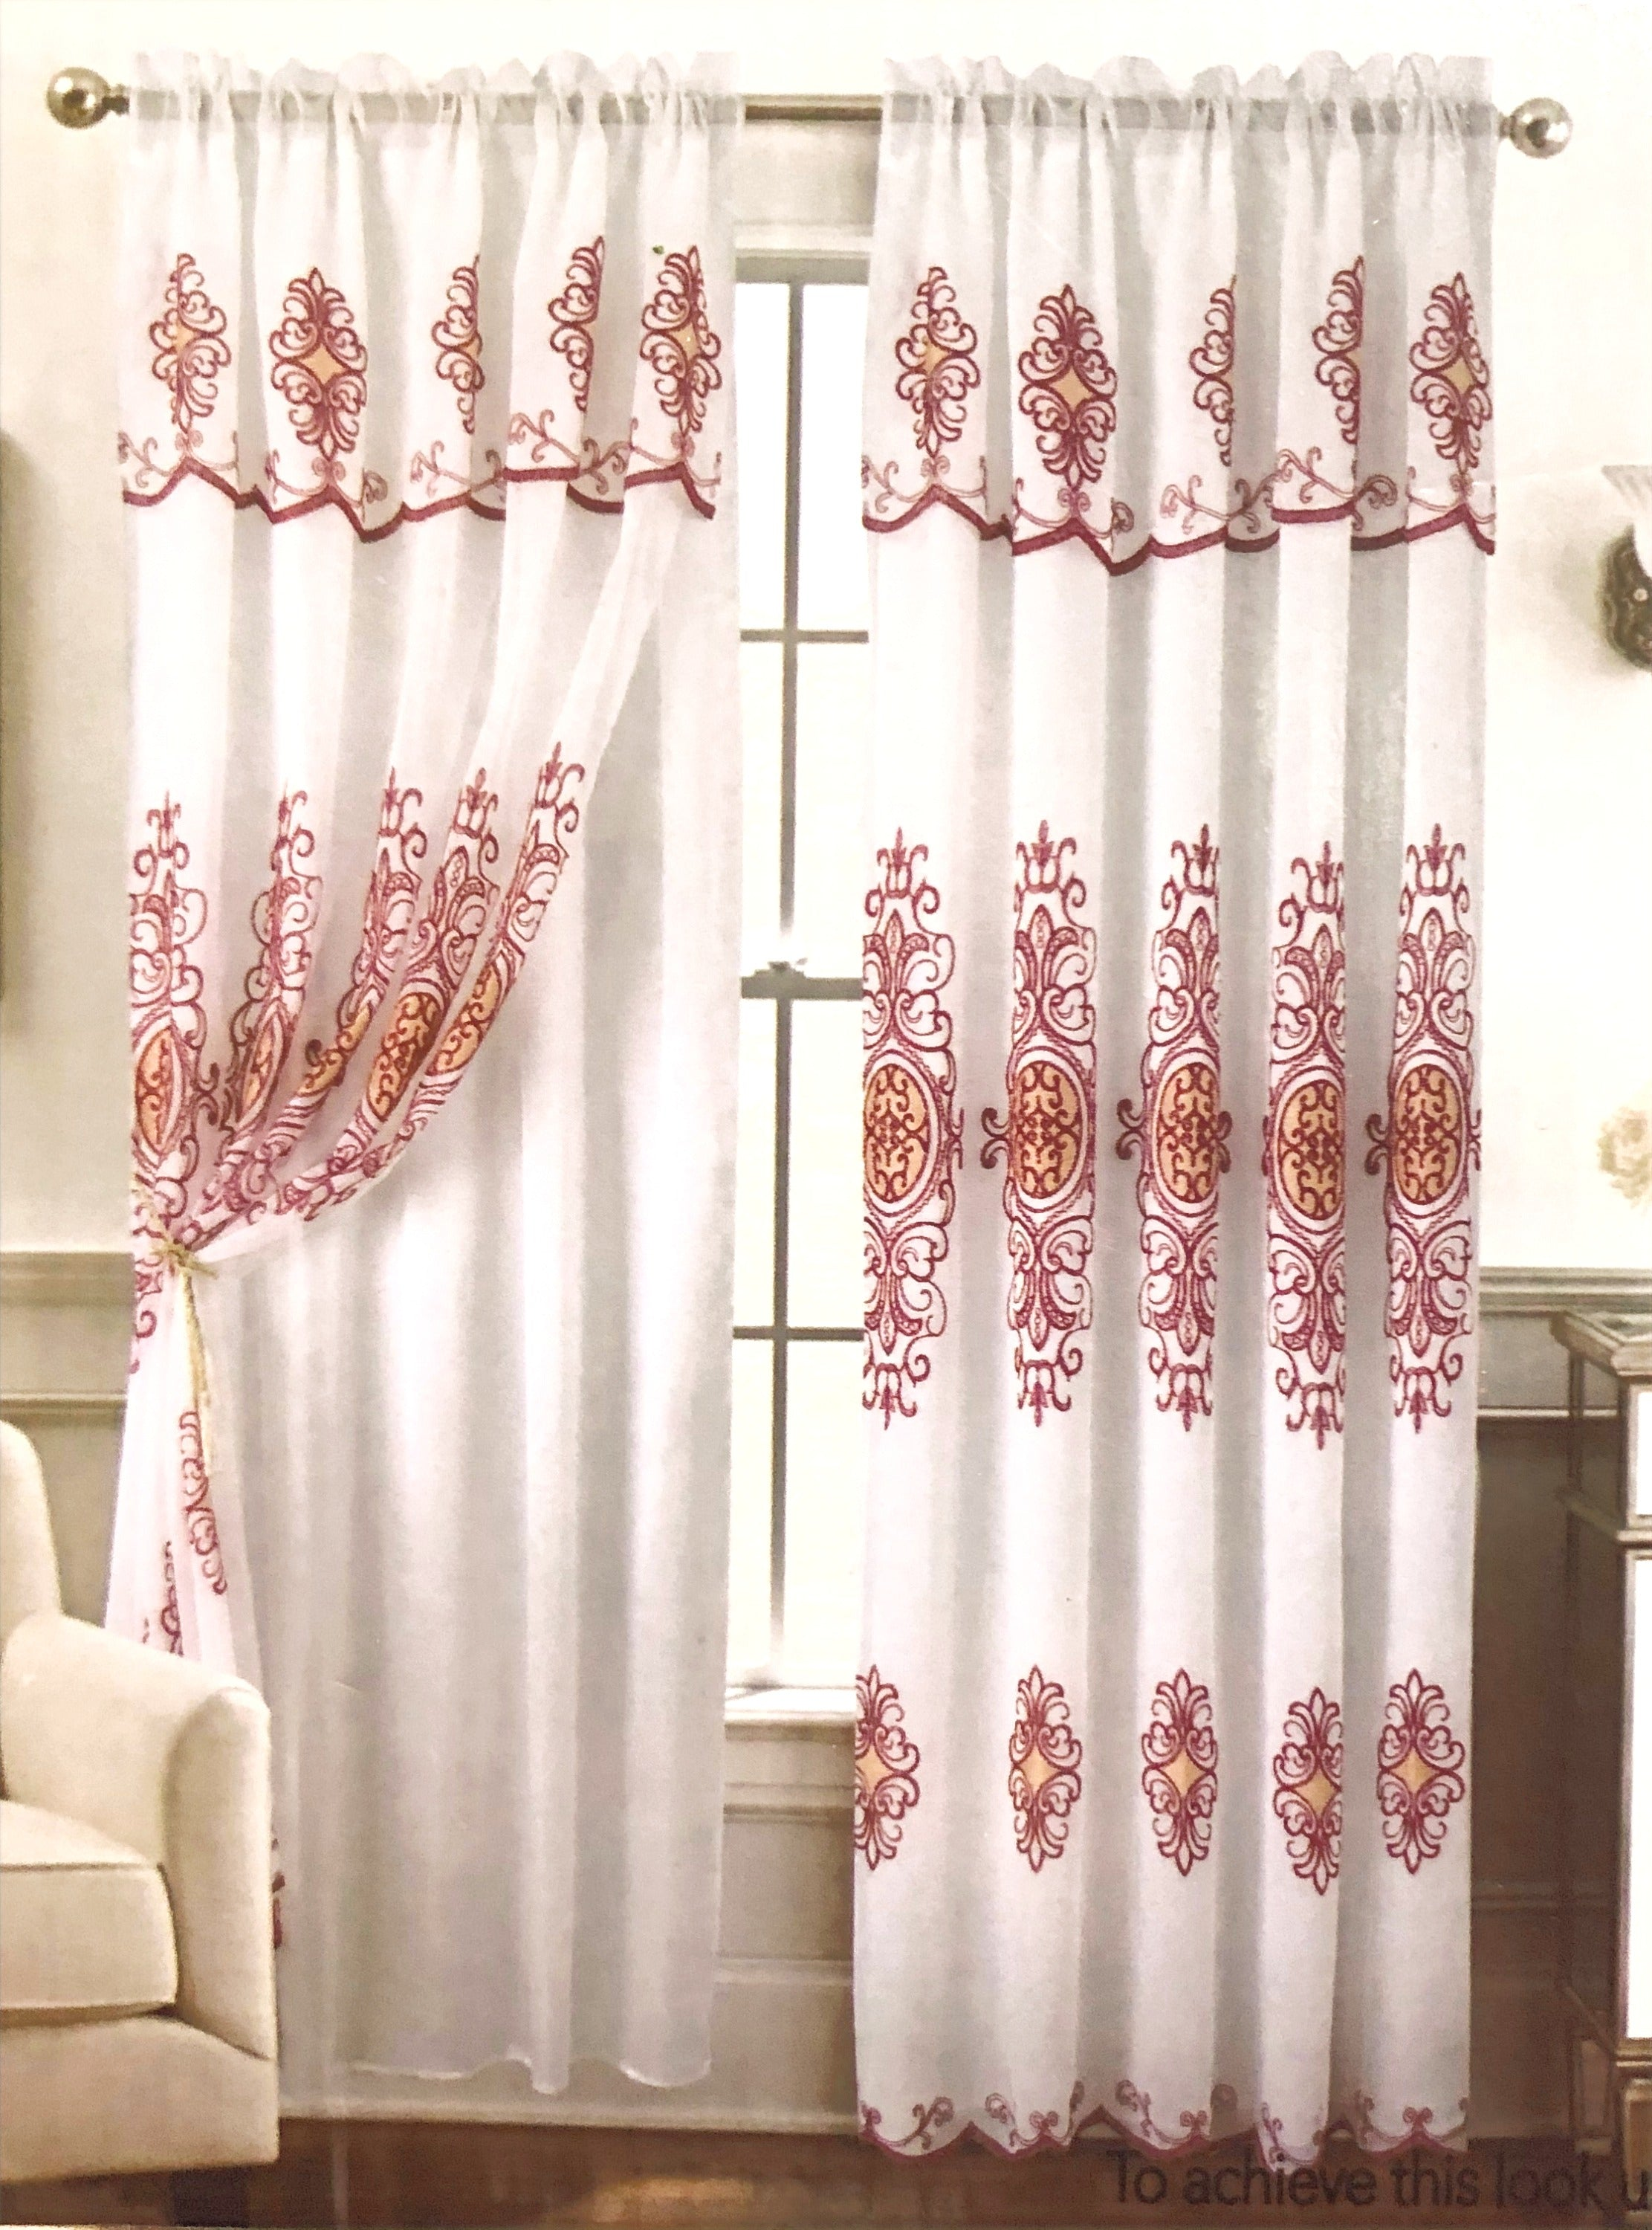 Romela - Single Embroidery Panel with Attached Valance